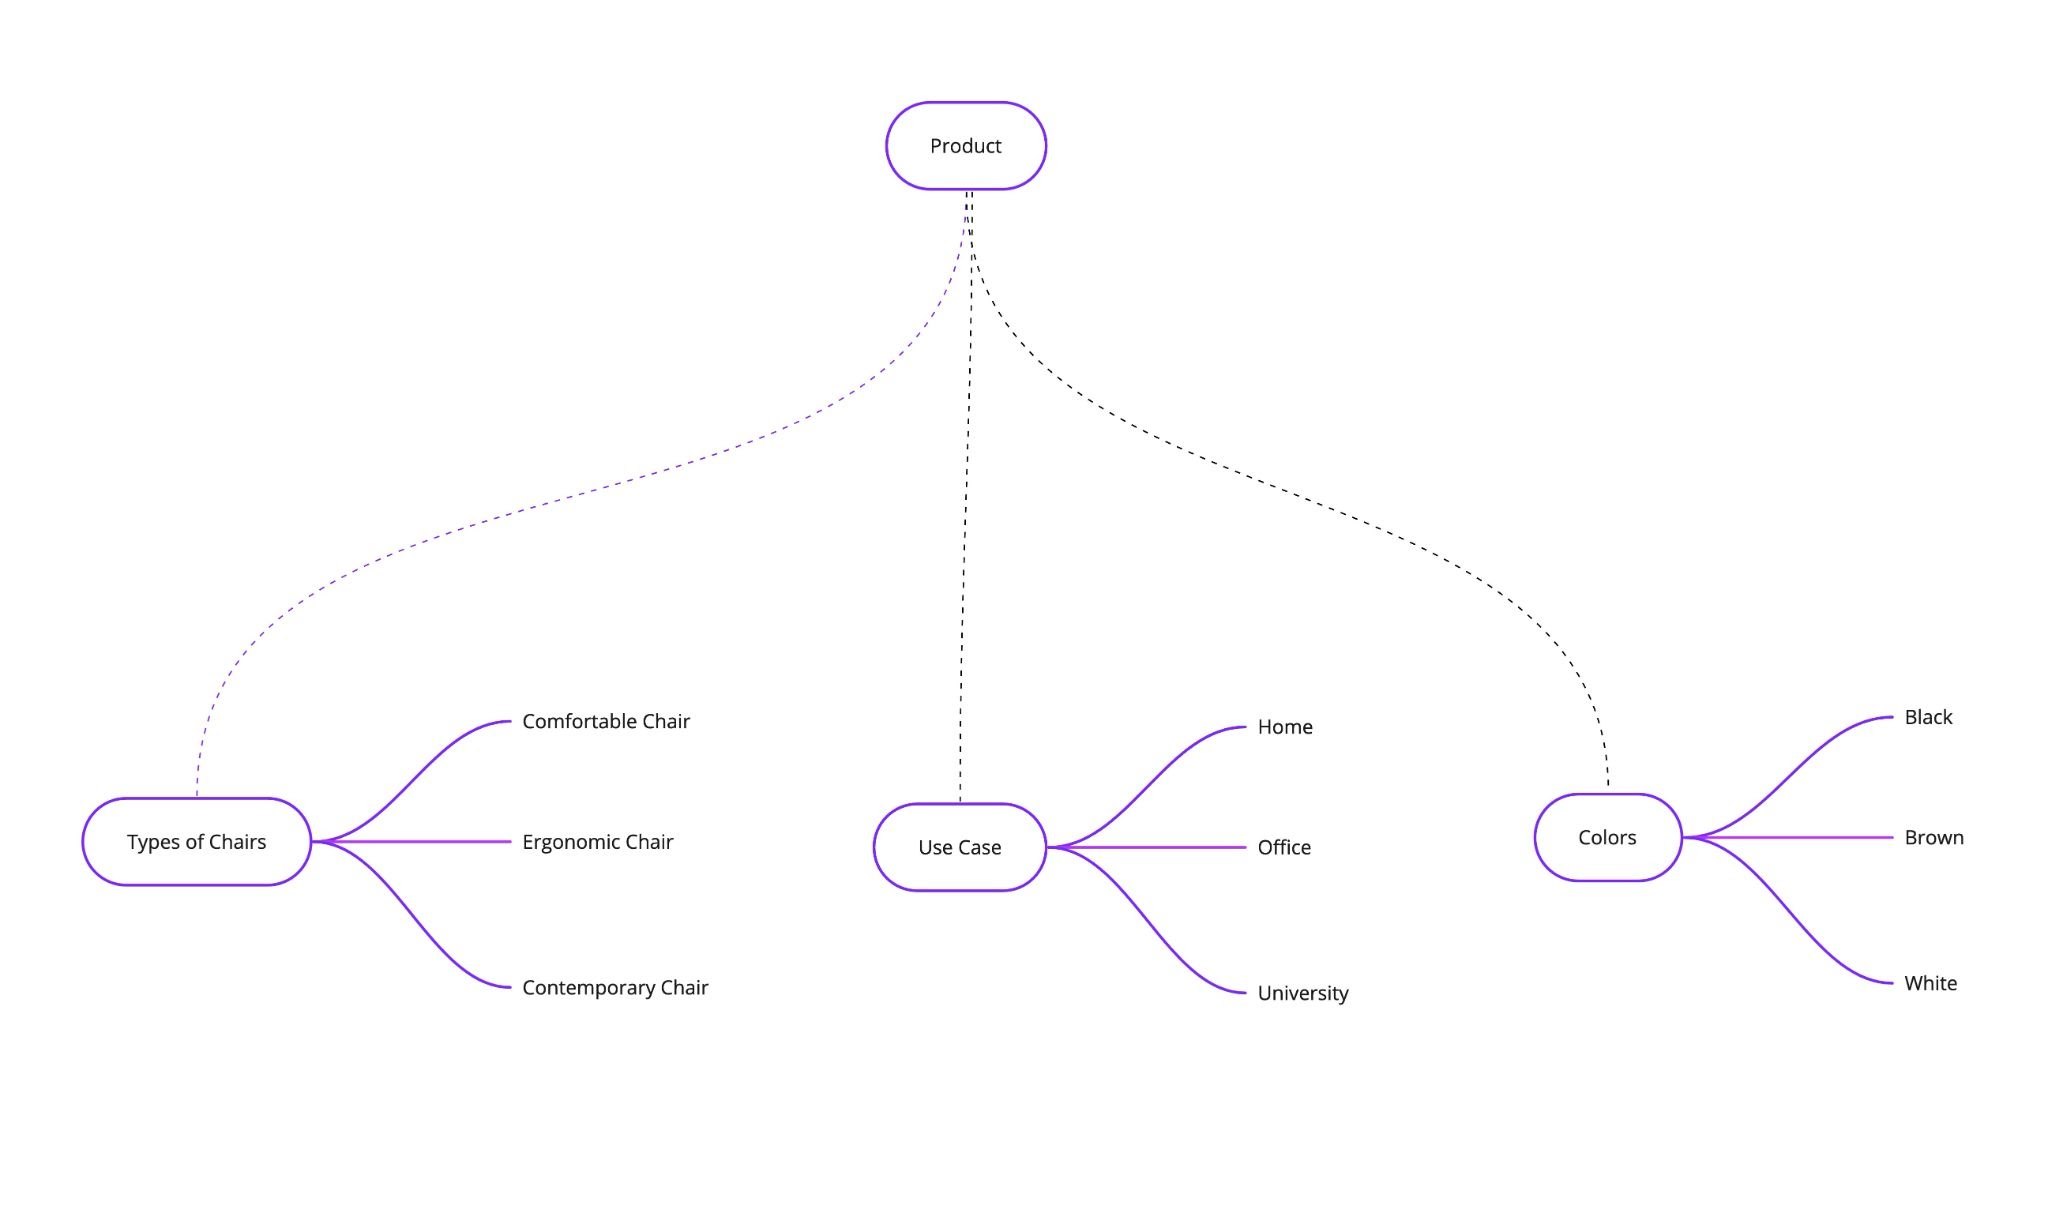 Example of a content model for specific chairs